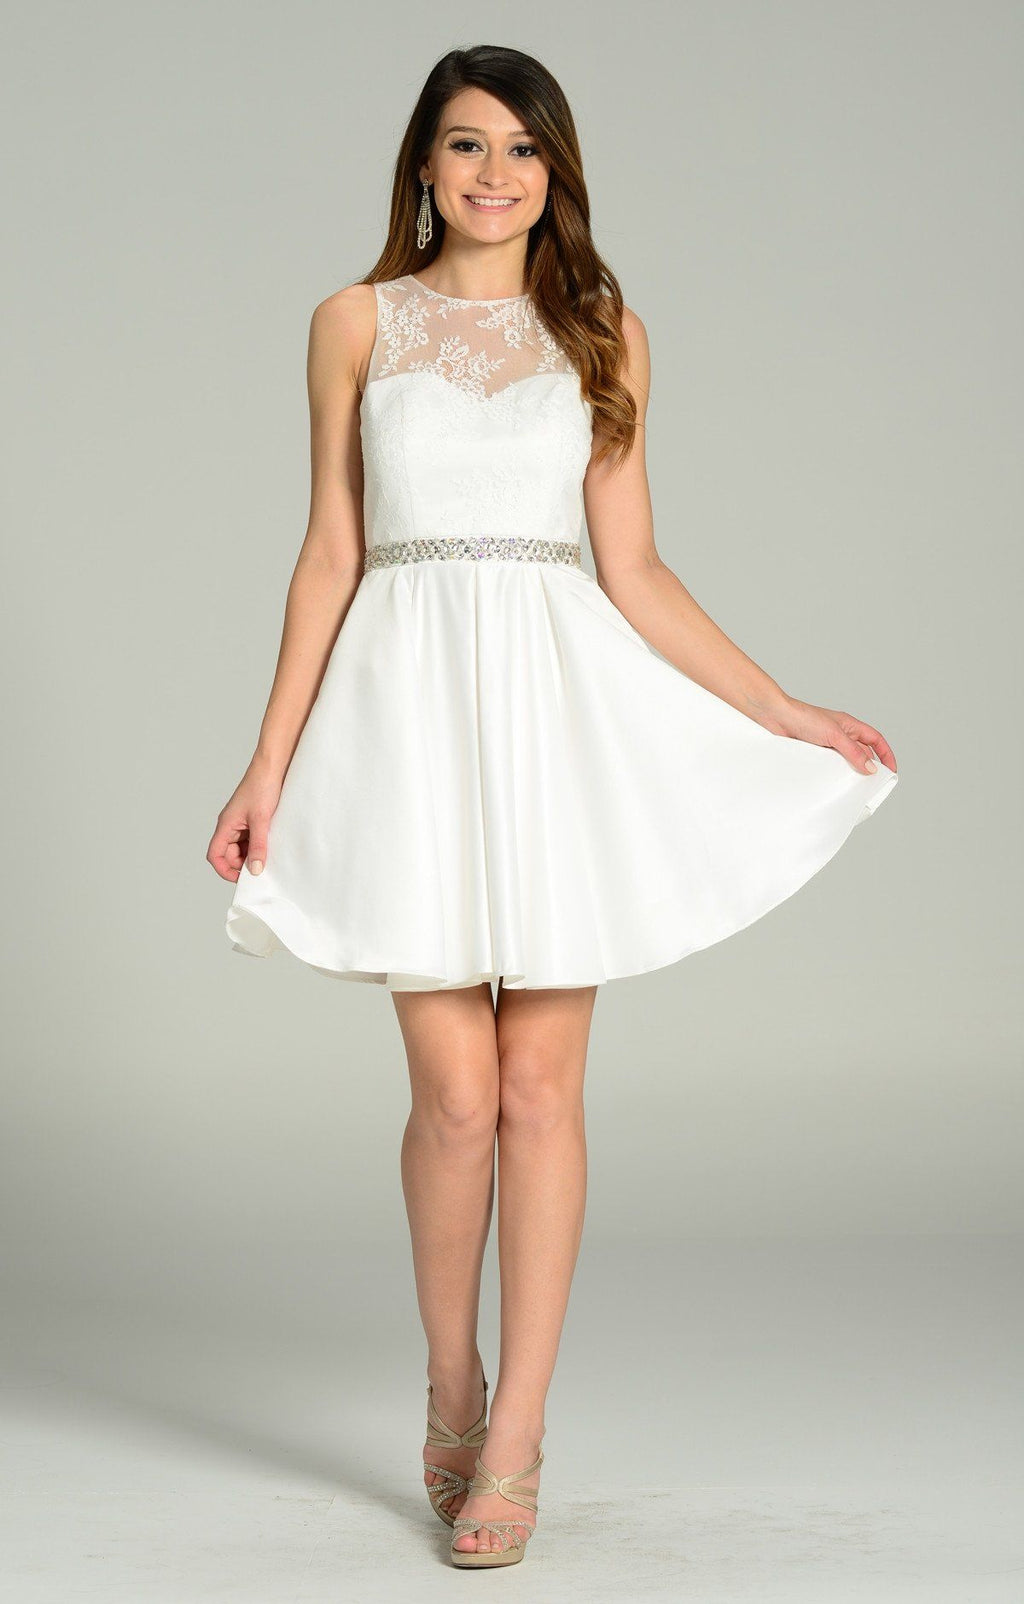 Lace bodice short white dress 101-7214 - Simply Fab Dress